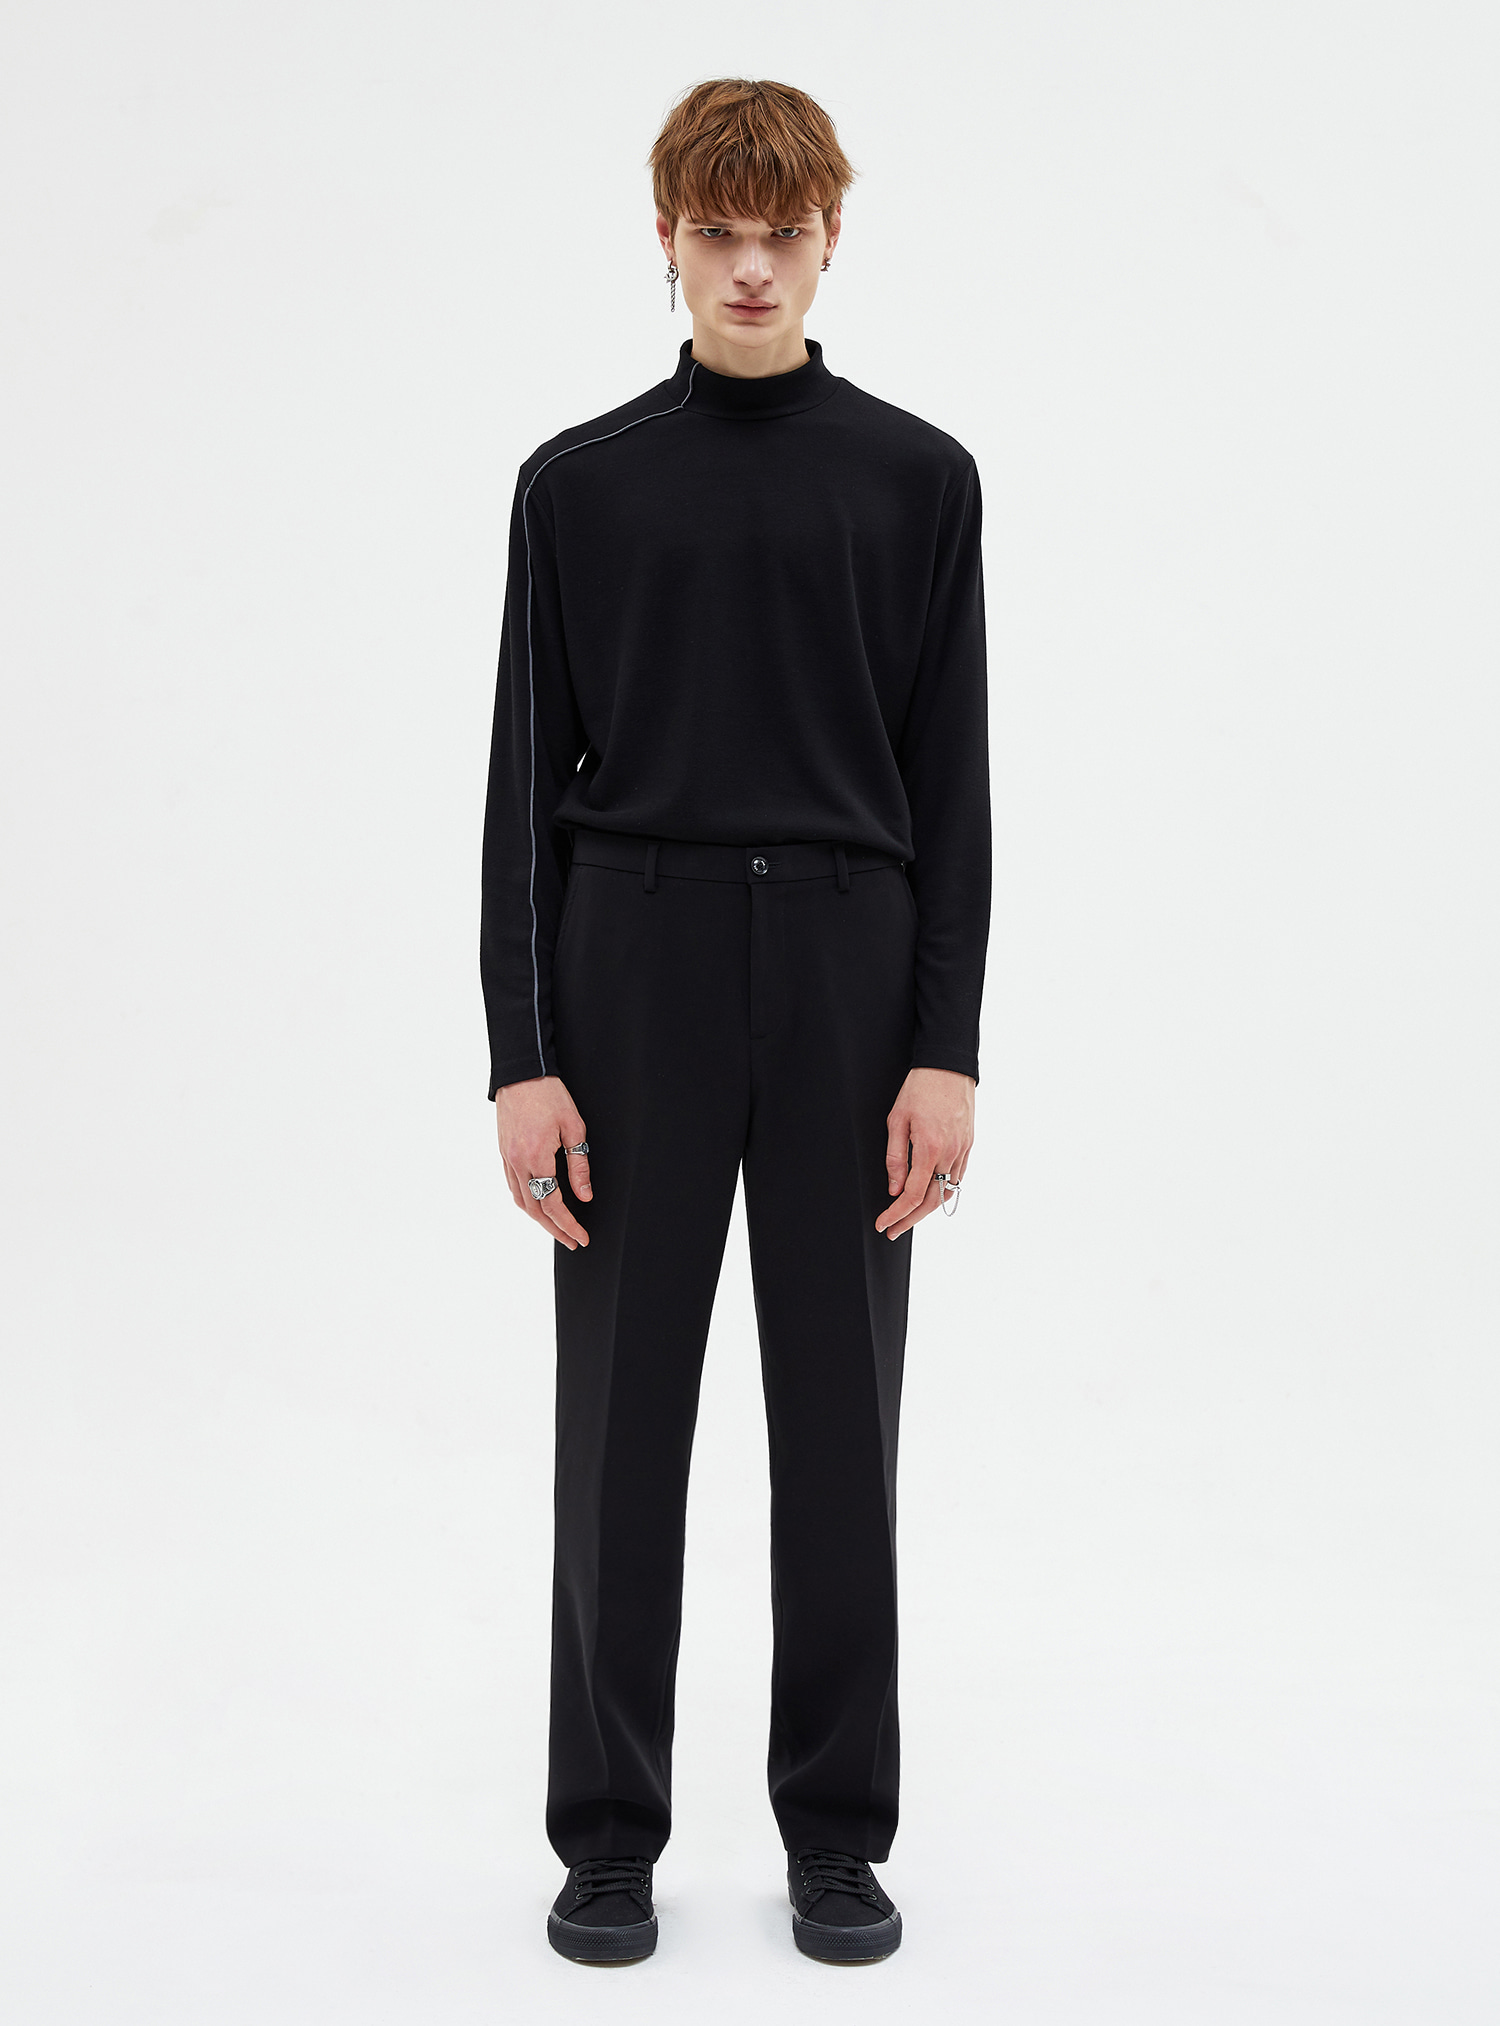 자체브랜드 - LONG WIDE SLACKS BLACK_FW